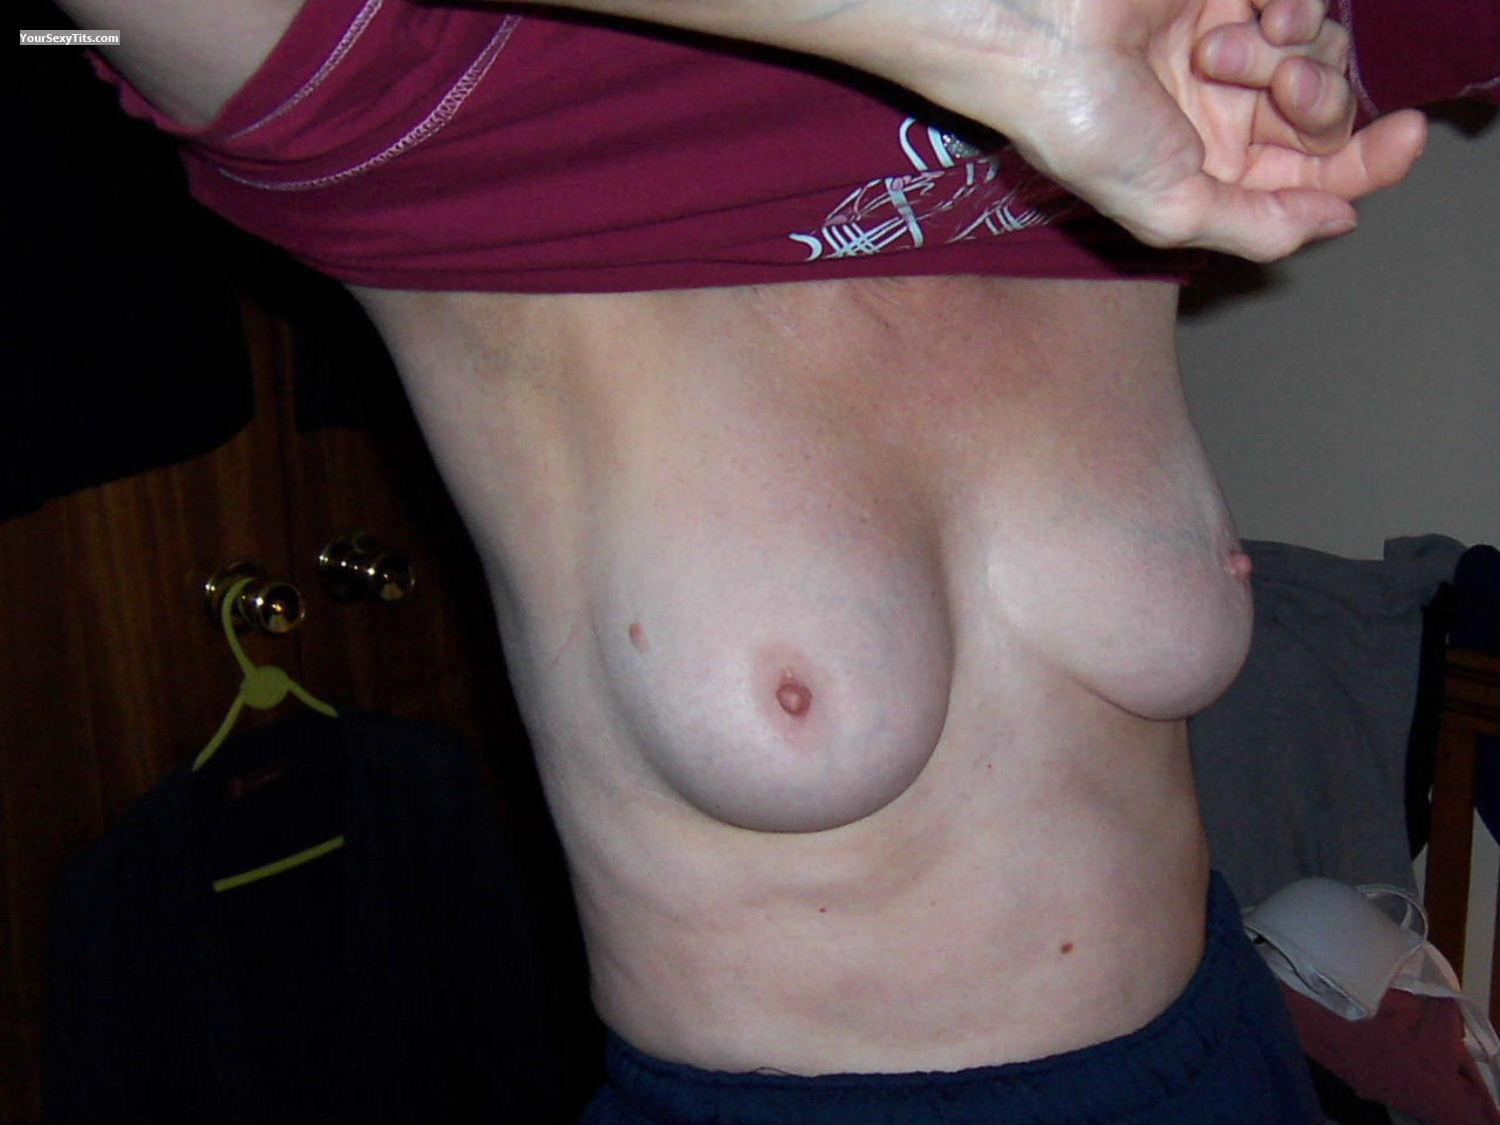 Medium Tits BubblySally